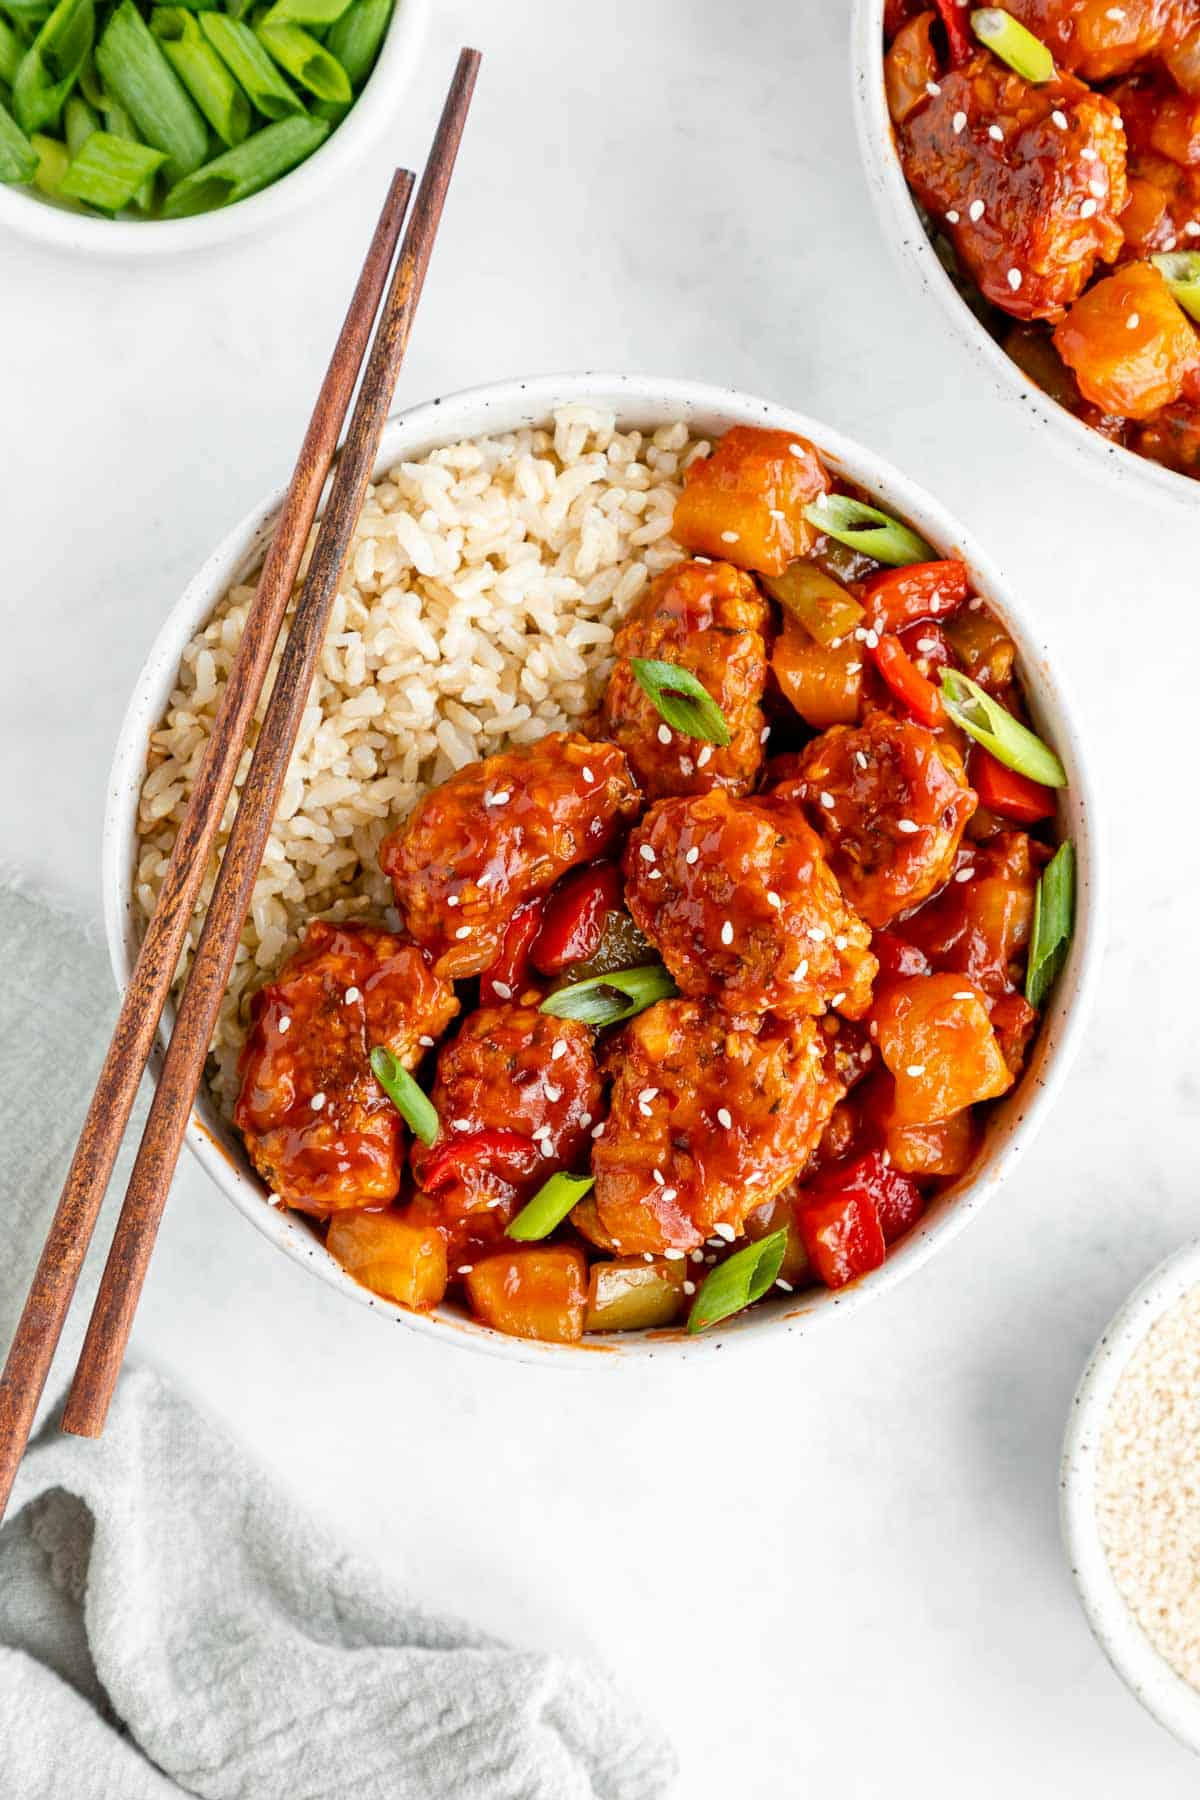 a bowl of vegan sweet and sour pork with brown rice